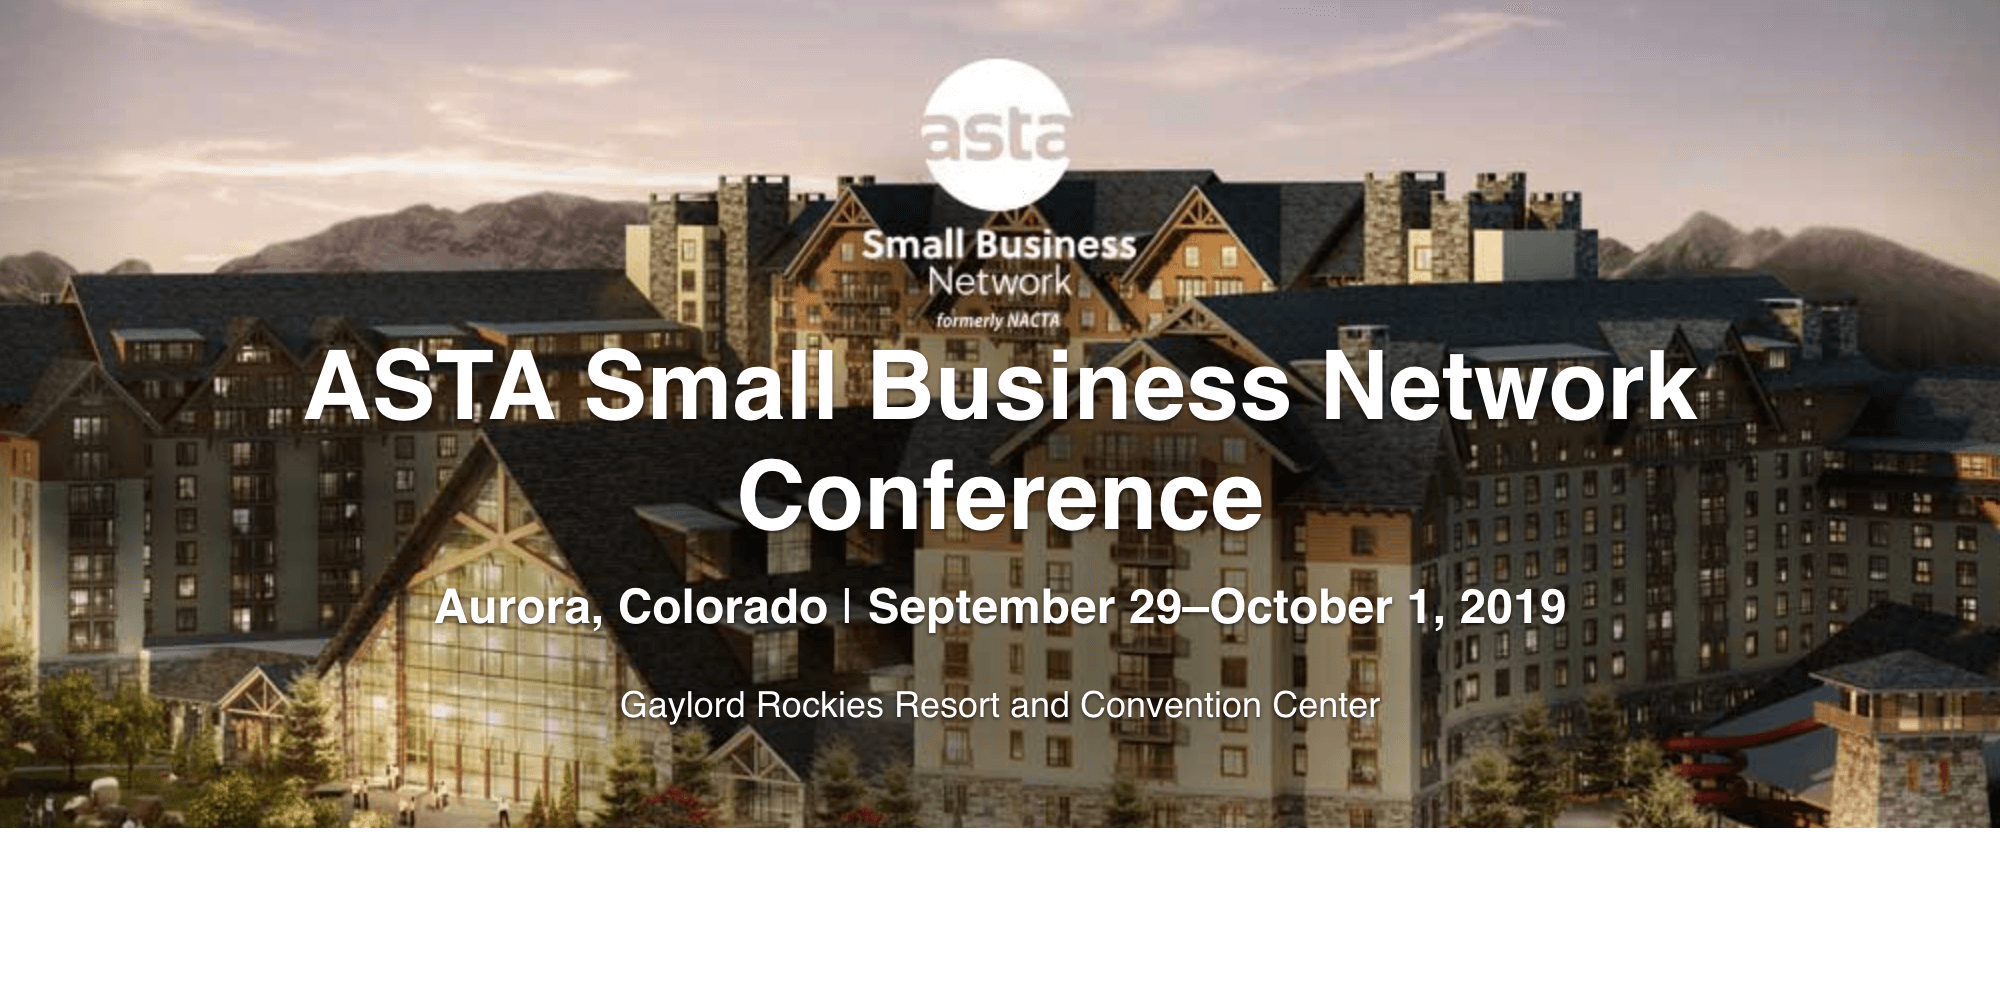 ASTA Small Business Network Conference